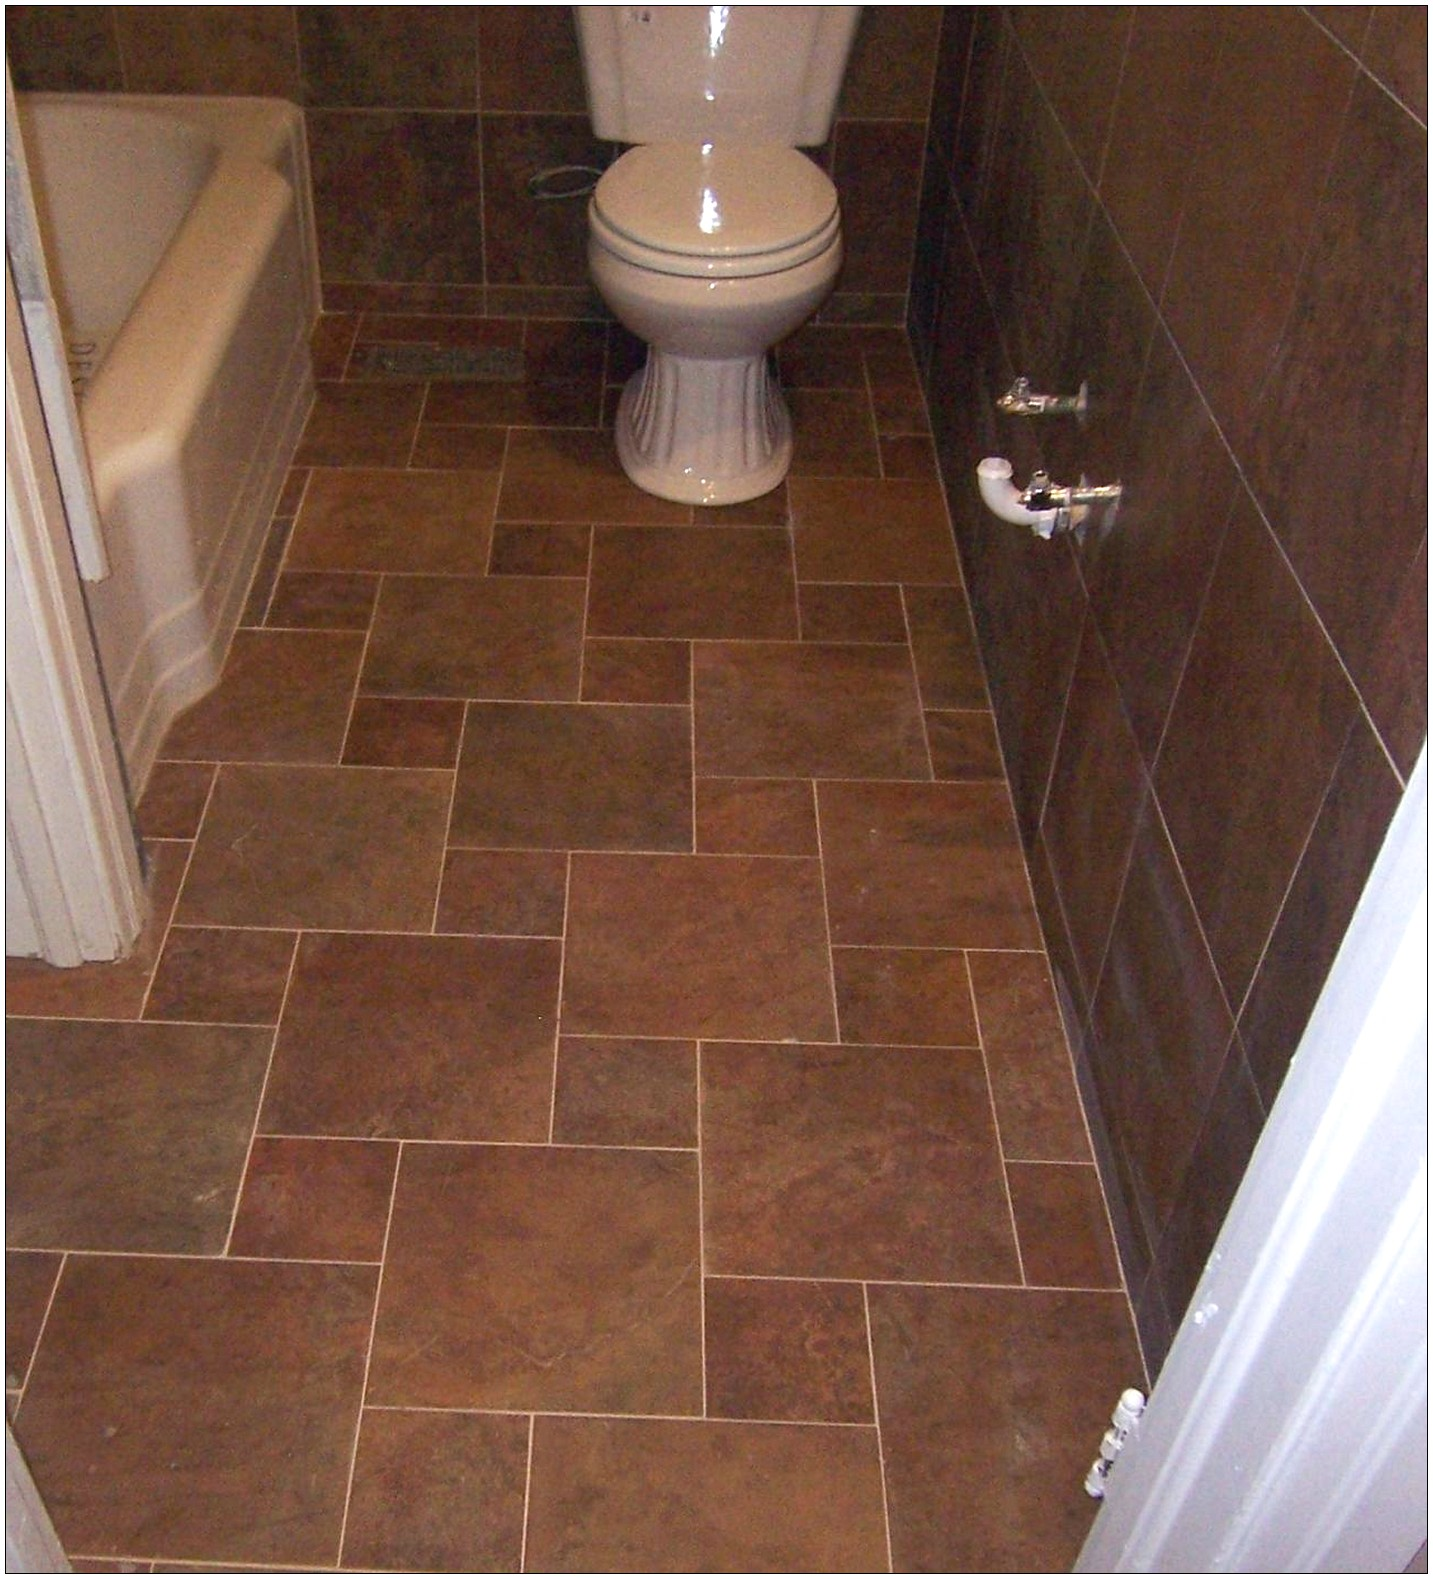 bathroom-floor-tile-design-home-design-example-bathroom-floor-tile-designs-bathroom-floor-tile-designs